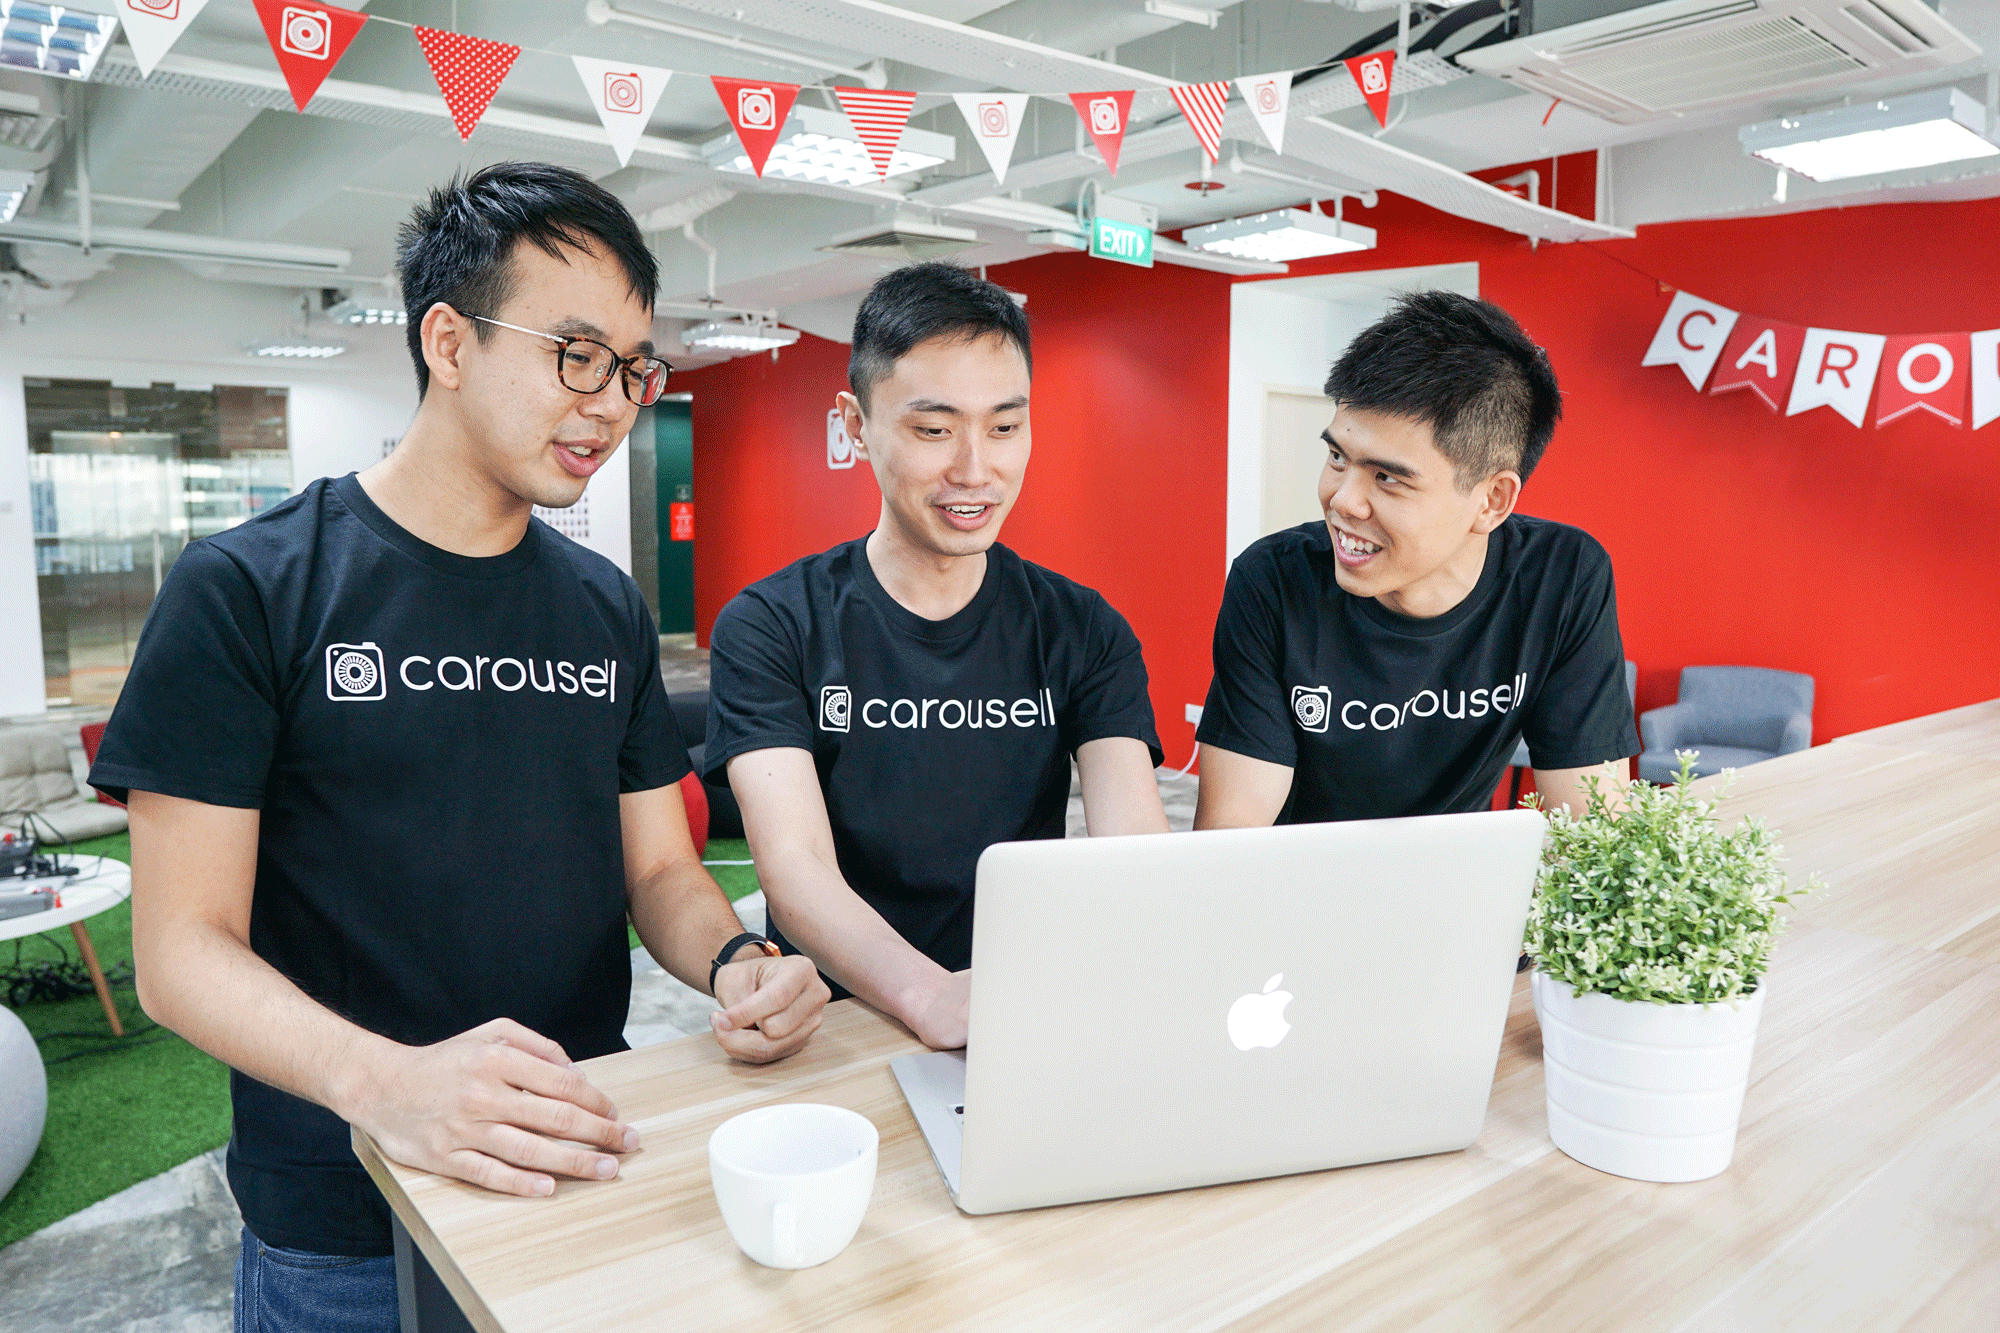 Carousell posts $7m revenue and $25m loss in 2018 as monetization efforts continue